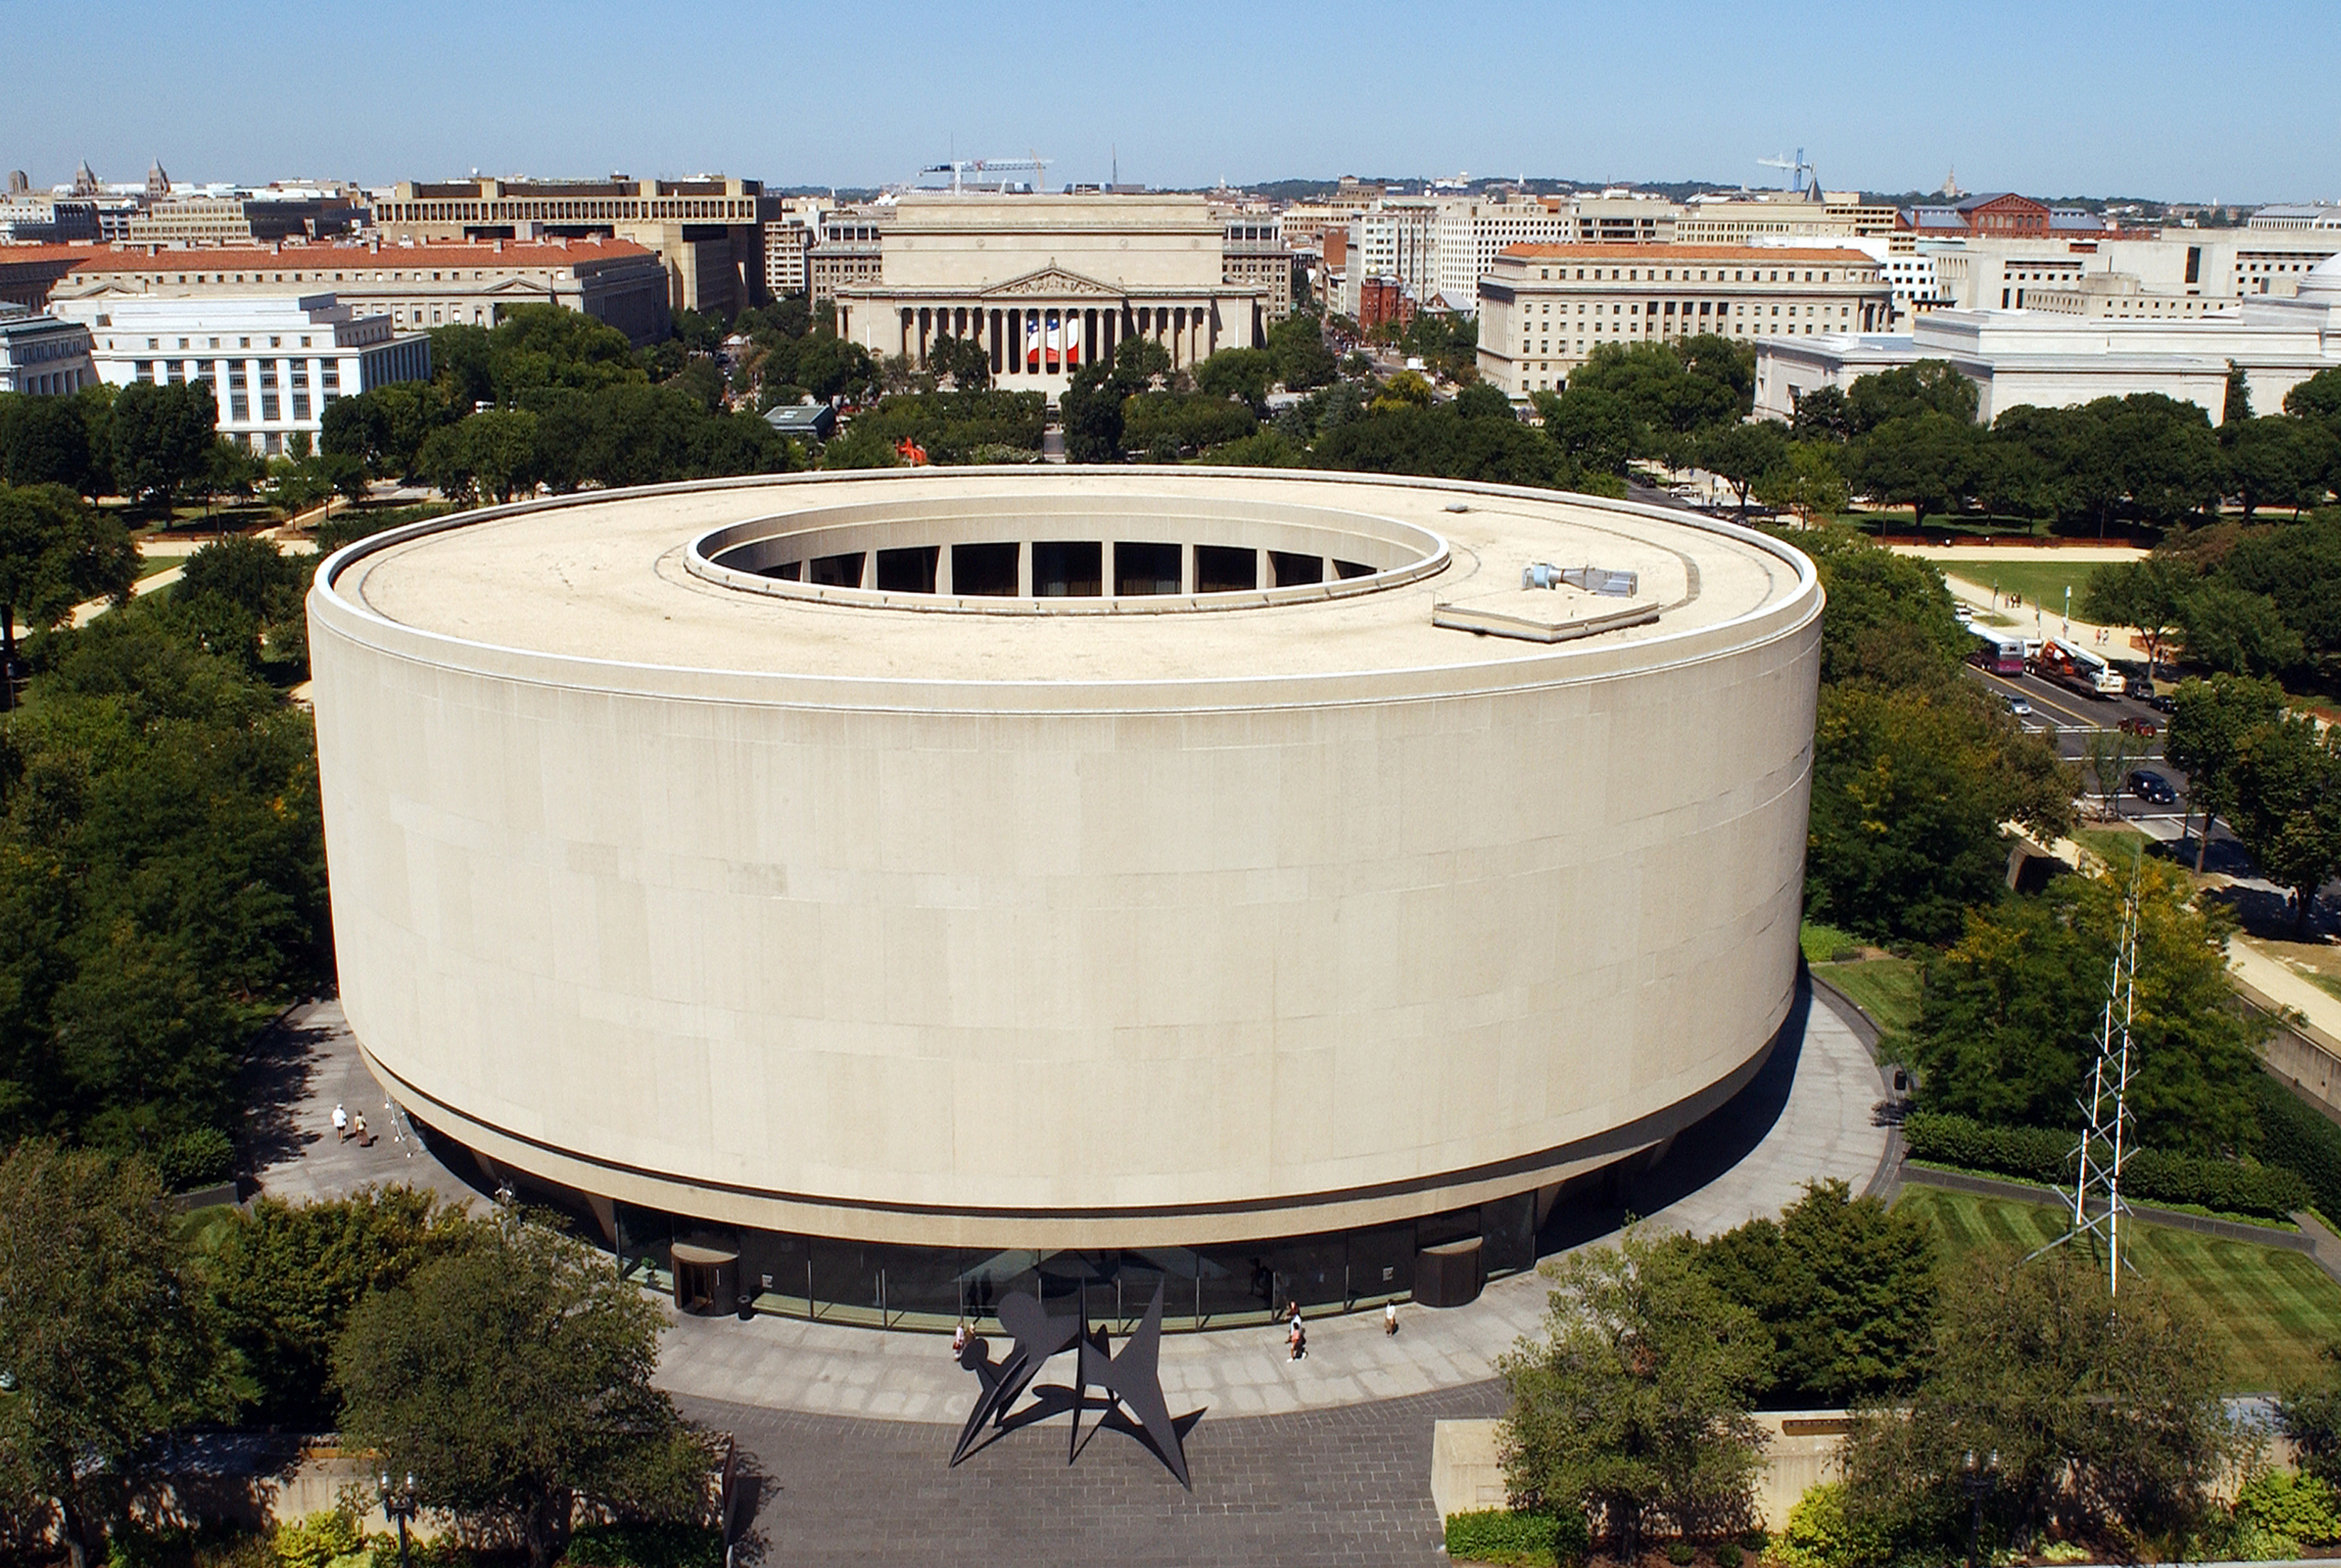 Smithsonian's Hirshhorn Museum and Sculpture Garden in Washington, D.C.